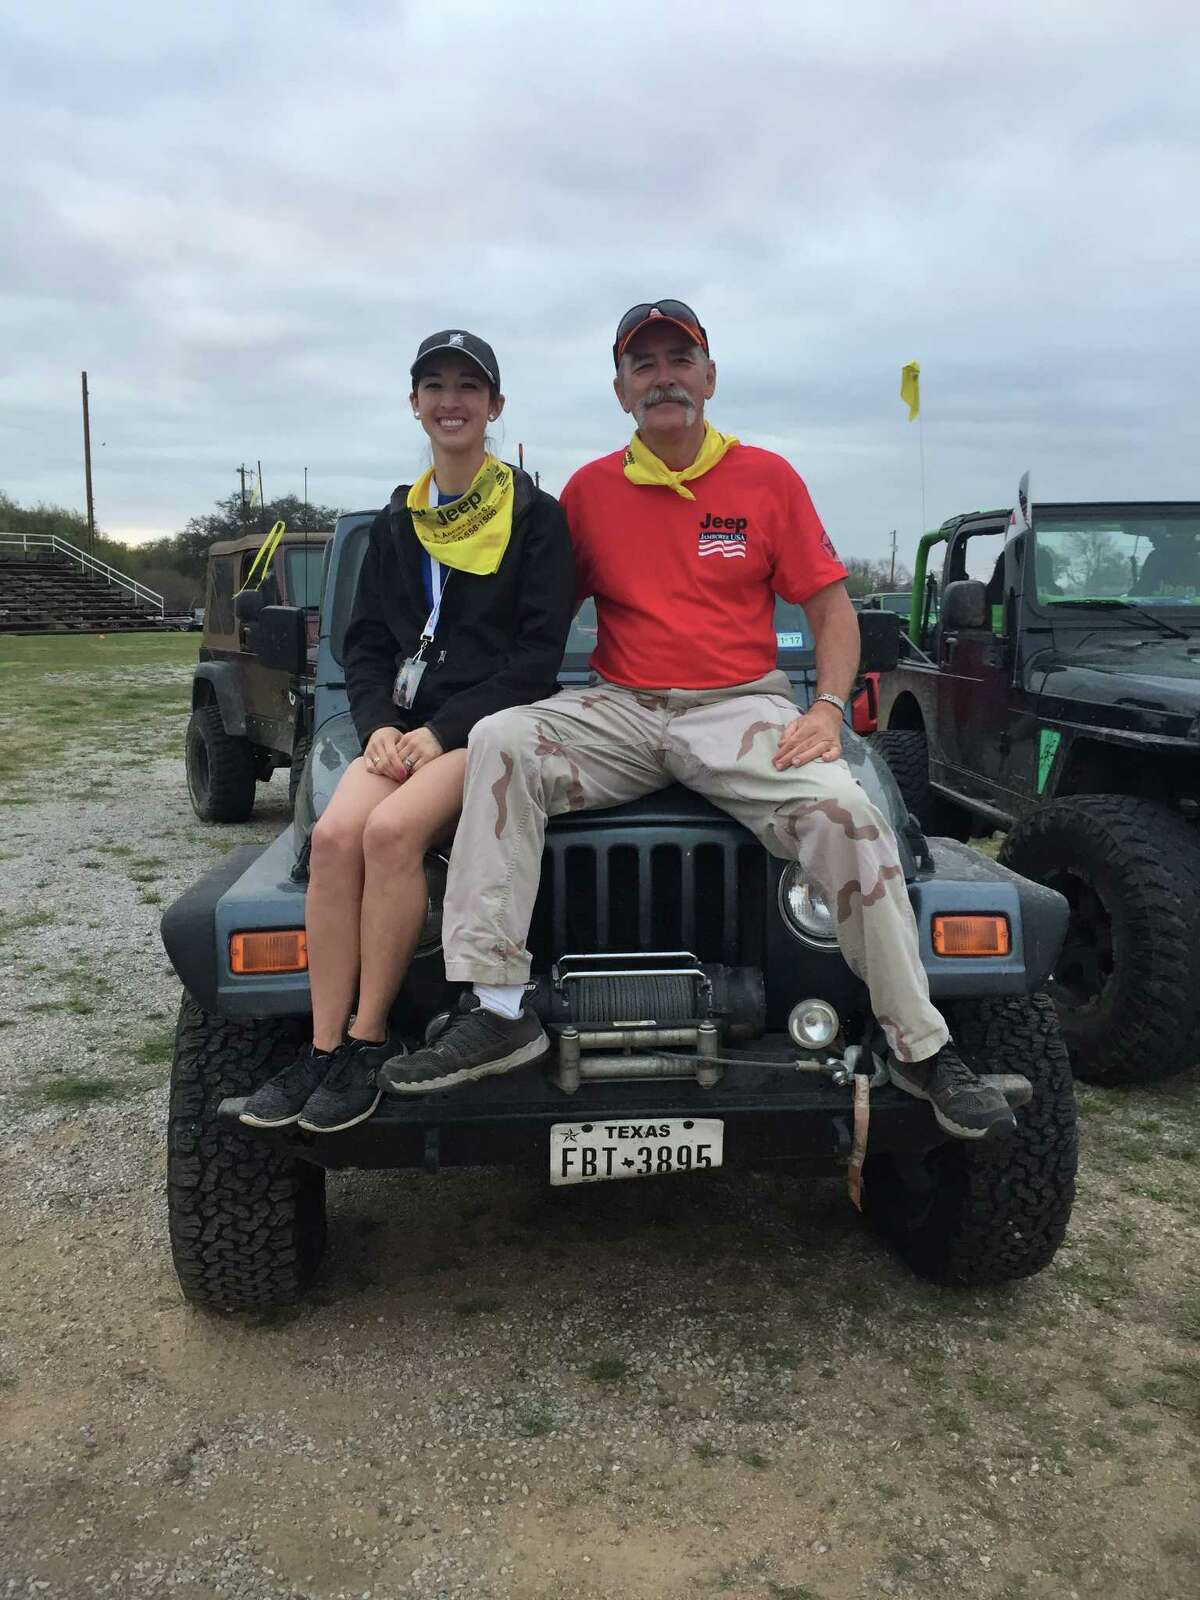 For more than 20, Amanda Boyd and her father Lee Zalesky have attended Jeep Jamborees, which are scenic and challenging drives for Jeep aficionados. In March 2017, they posed during the Texas Spur Jeep Jamboree. With 23 years of experience, Zalesky, a retired San Antonio firefighter, is the longest running trail guide for the Jeep Jamboree USA organization. Amanda Boyd graduated from Antonian College Preparatory High School and is the athletic trainer at Alamo Heights High School.